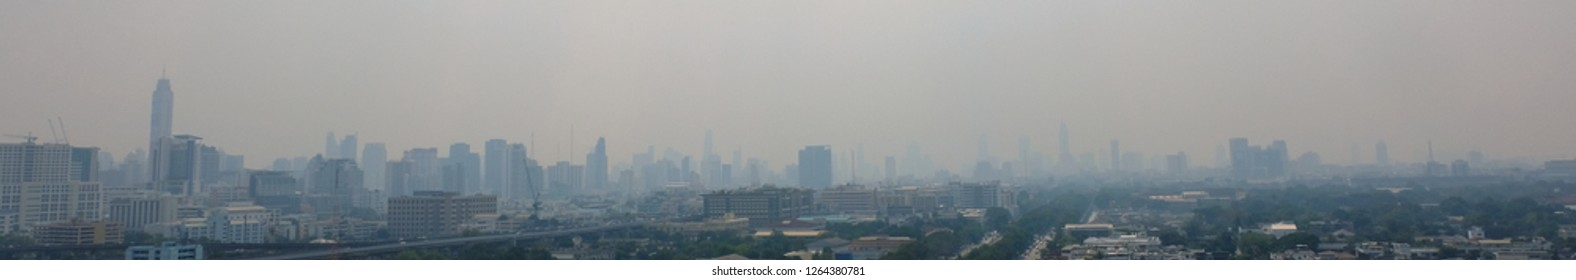 Bangkok, Thailand, 22 Dec. 2018, this morning Those who live in Bangkok will probably see the flight conditions and breathe with air that is dust smaller than 2.5 microns (PM 2.5).